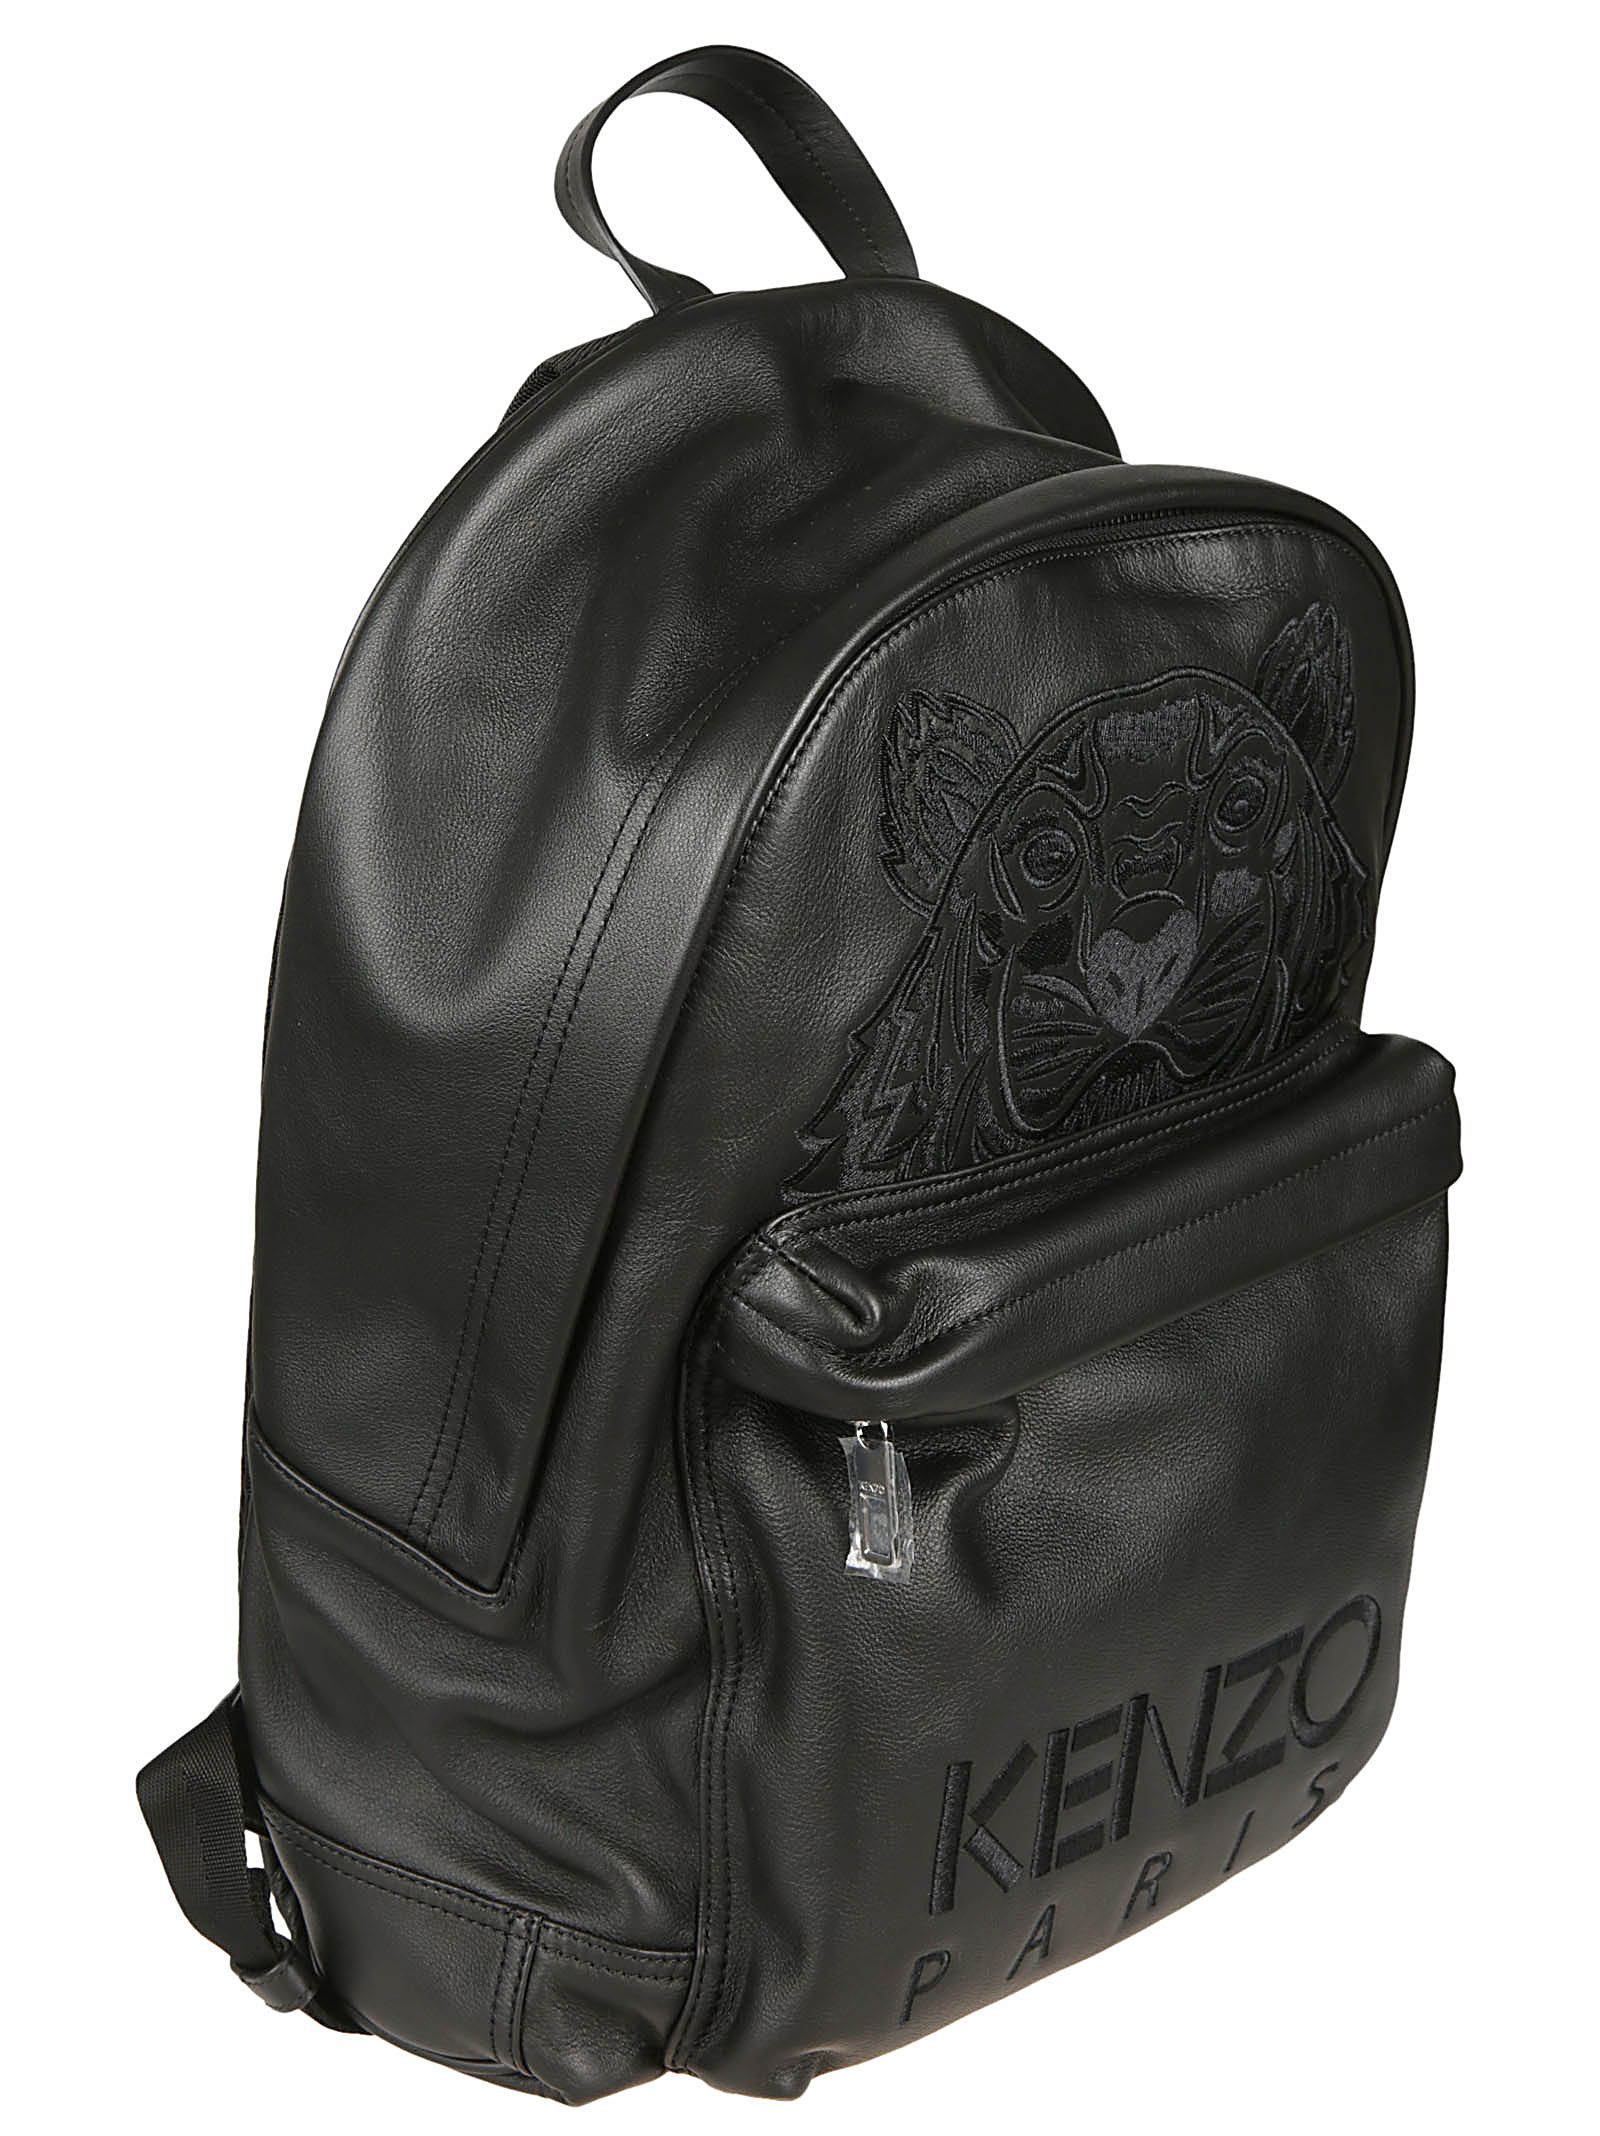 f93fd9dbe9 ... Kenzo Embroidered Tiger Logo Backpack - Black